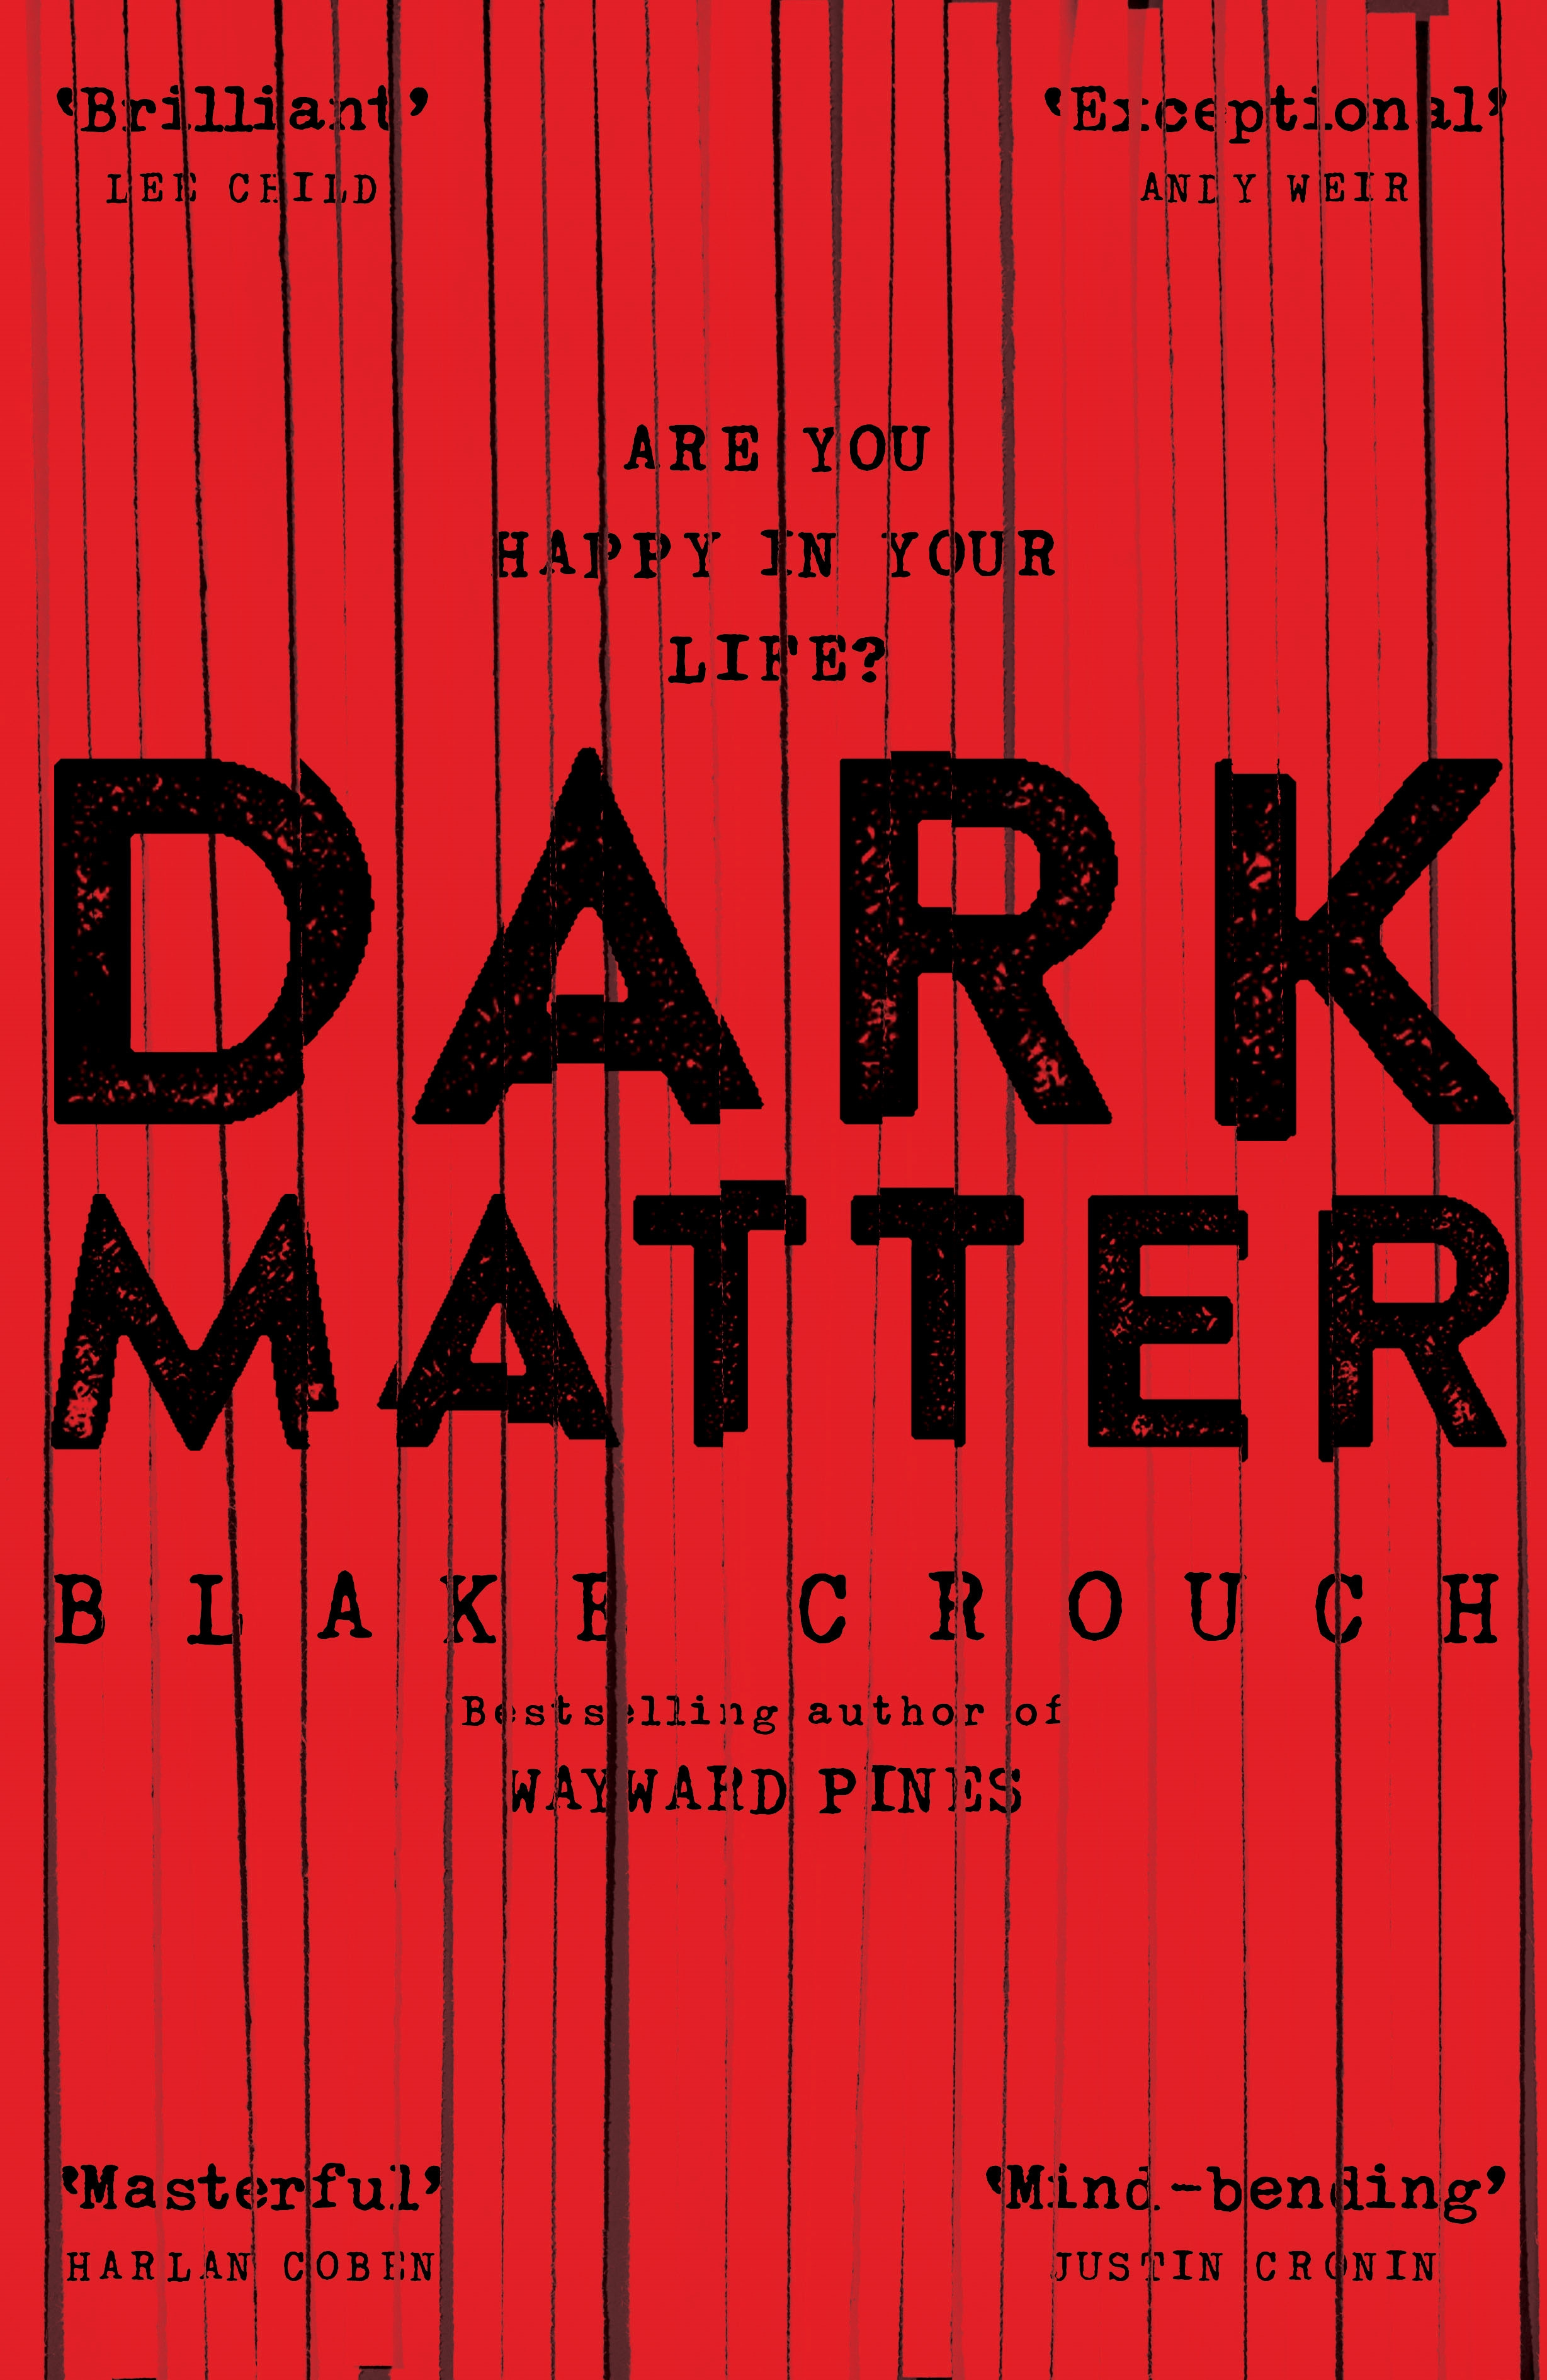 Dark Matter by Blake Crouch book review   SciFiNow - The ...